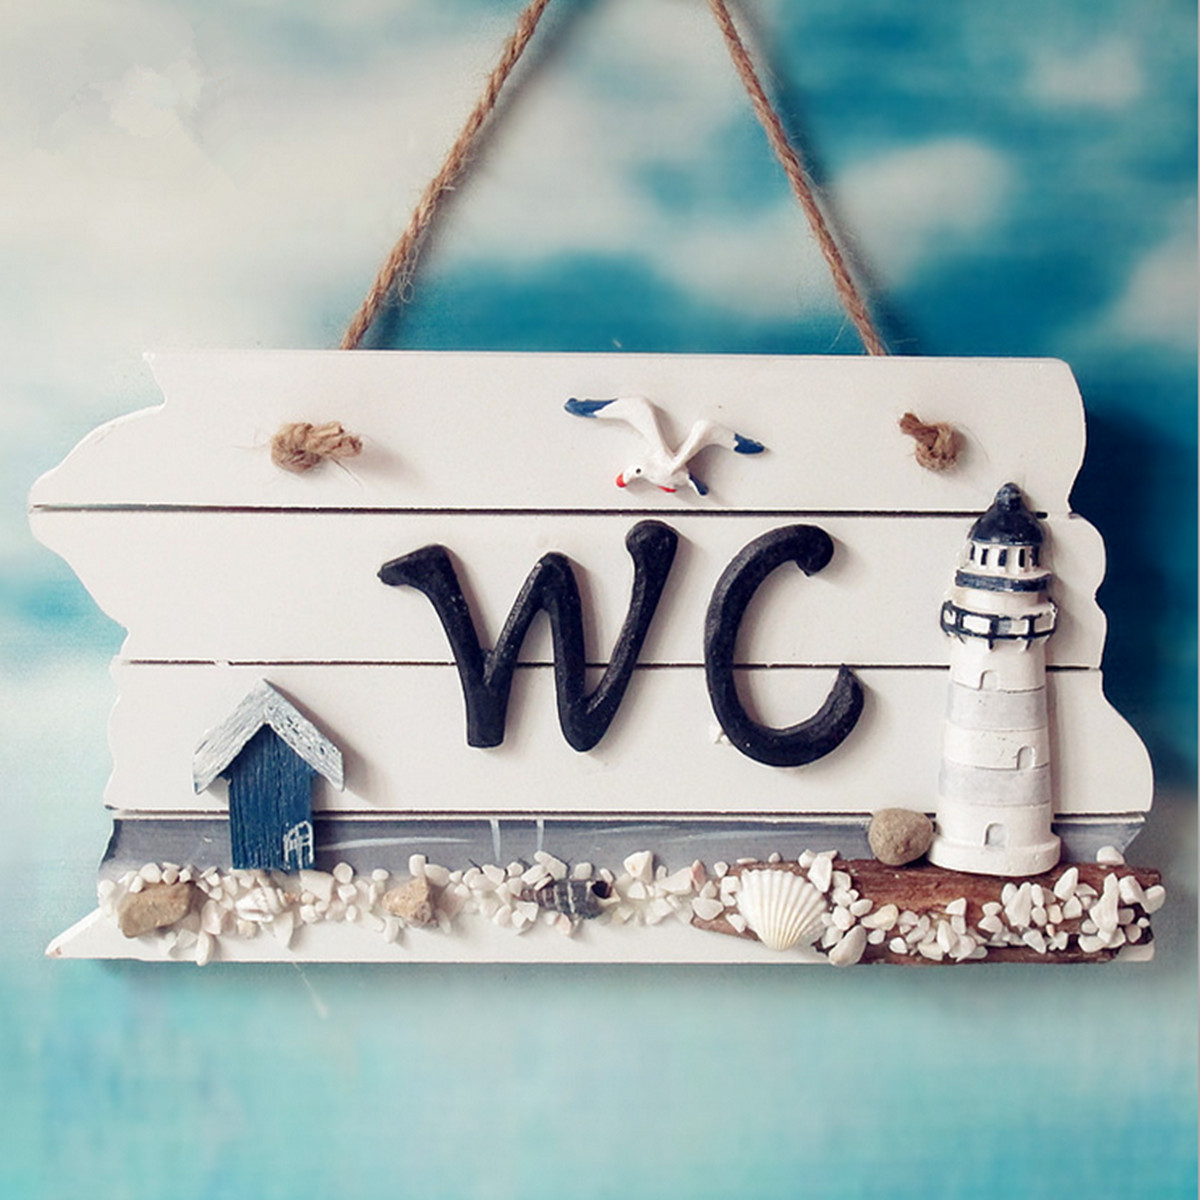 Wood WC Shingle Hanging Doorplate Nautical Home Plaque Door Sign Decor Xmas Gift